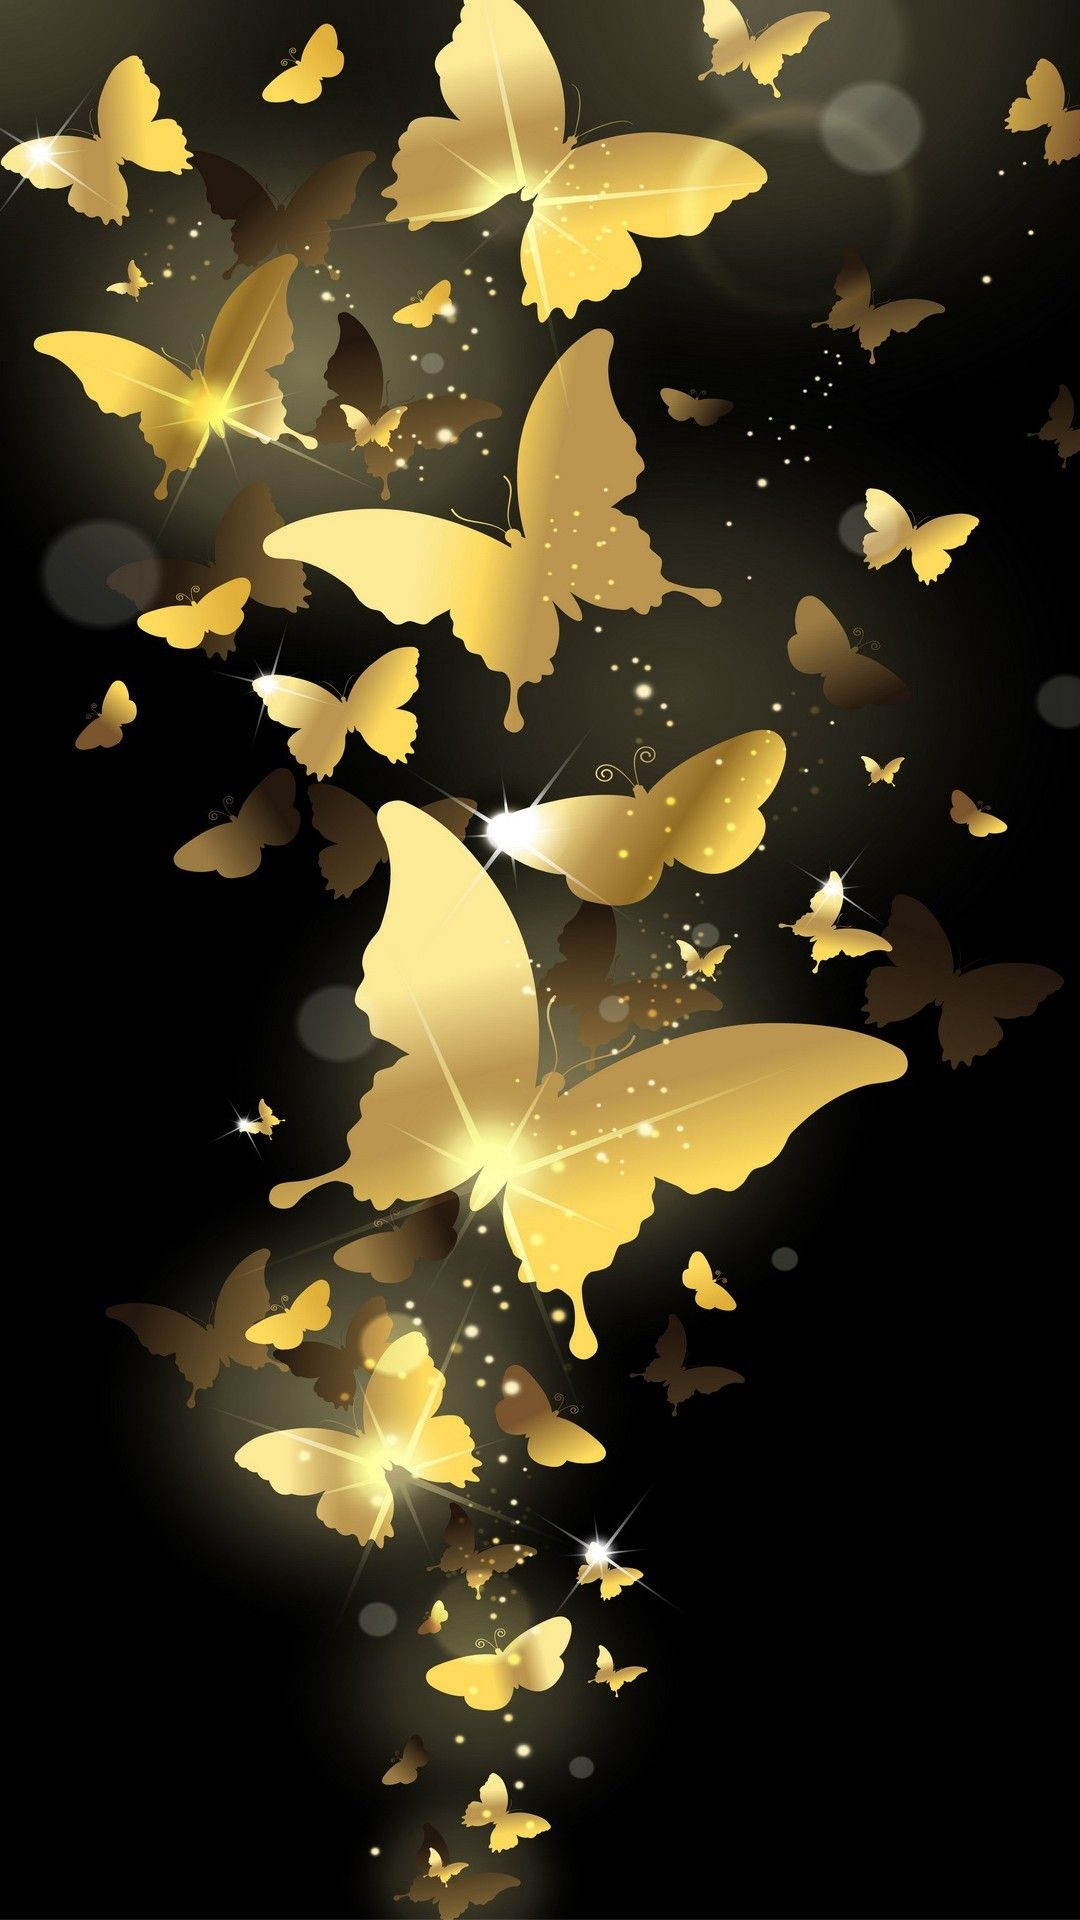 Gold Butterflies On Black Wallpaper Butterfly Wallpaper Gold Wallpaper Iphone Phone Lock Screen Wallpaper